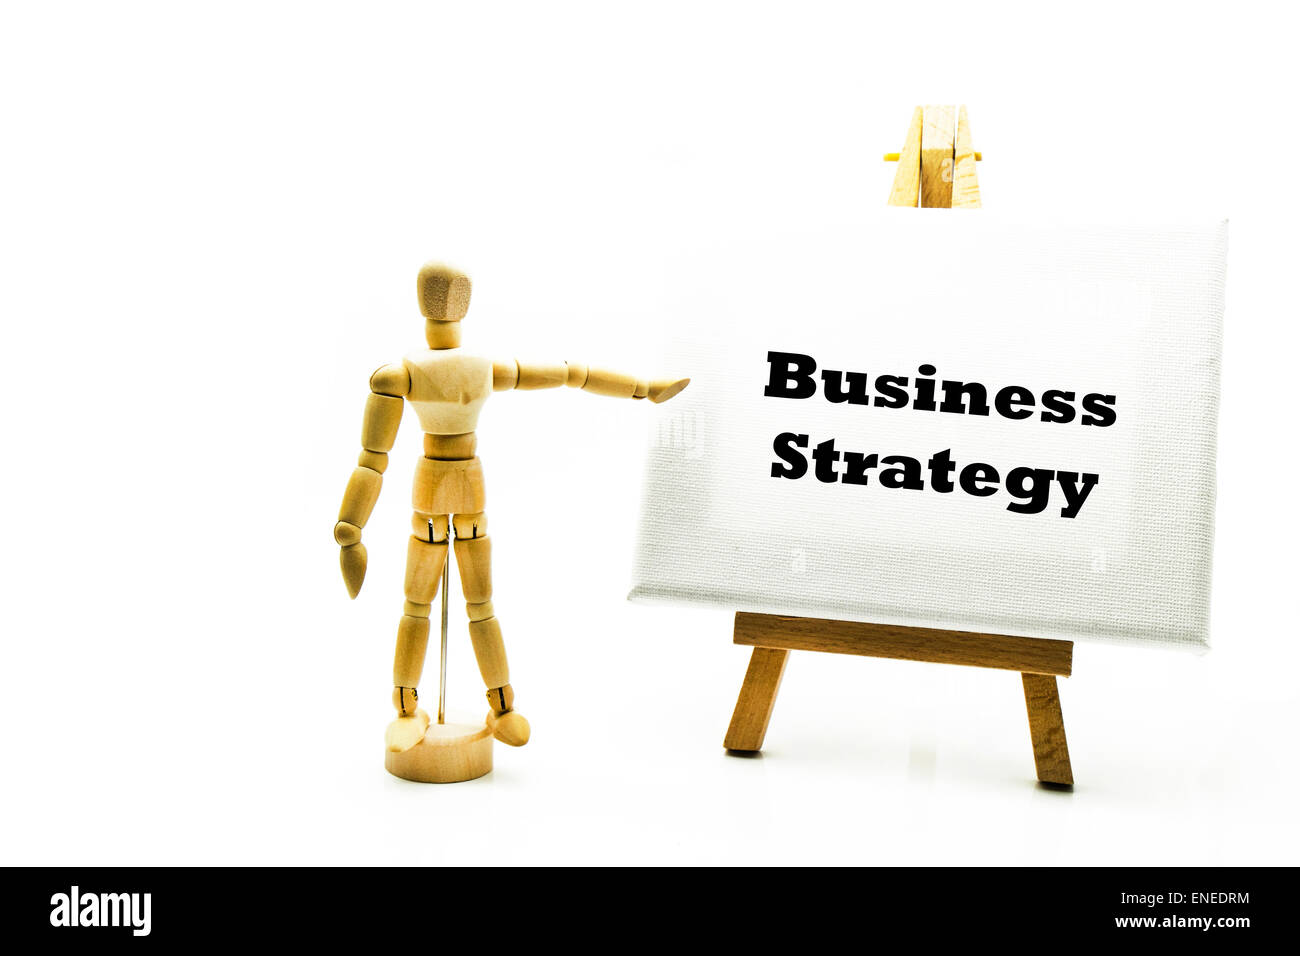 Wooden man with white board pointing at words 'business strategy' businesses strategies strategic progress - Stock Image